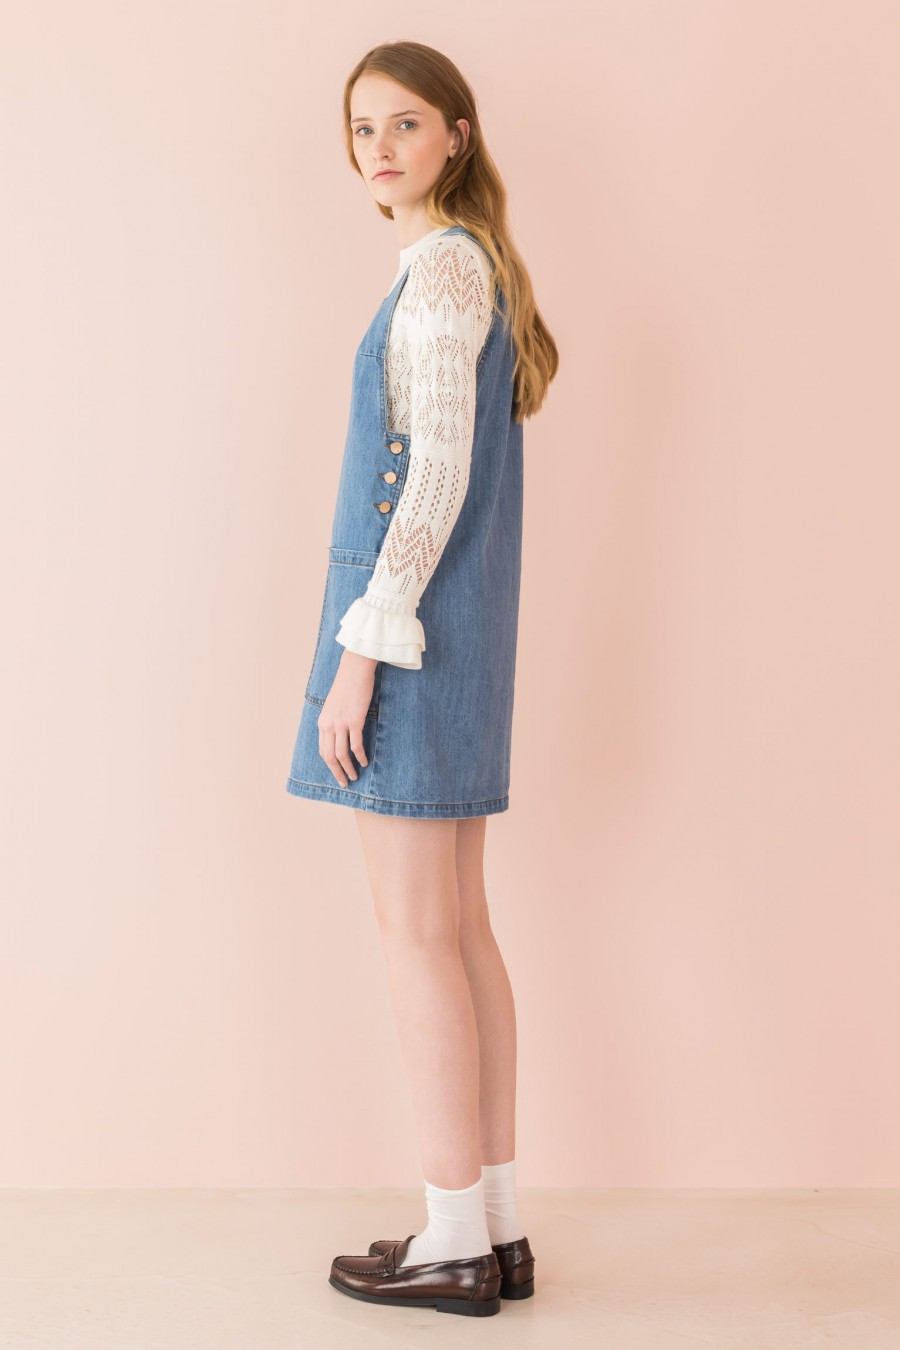 denim pinafore dress in light jeans